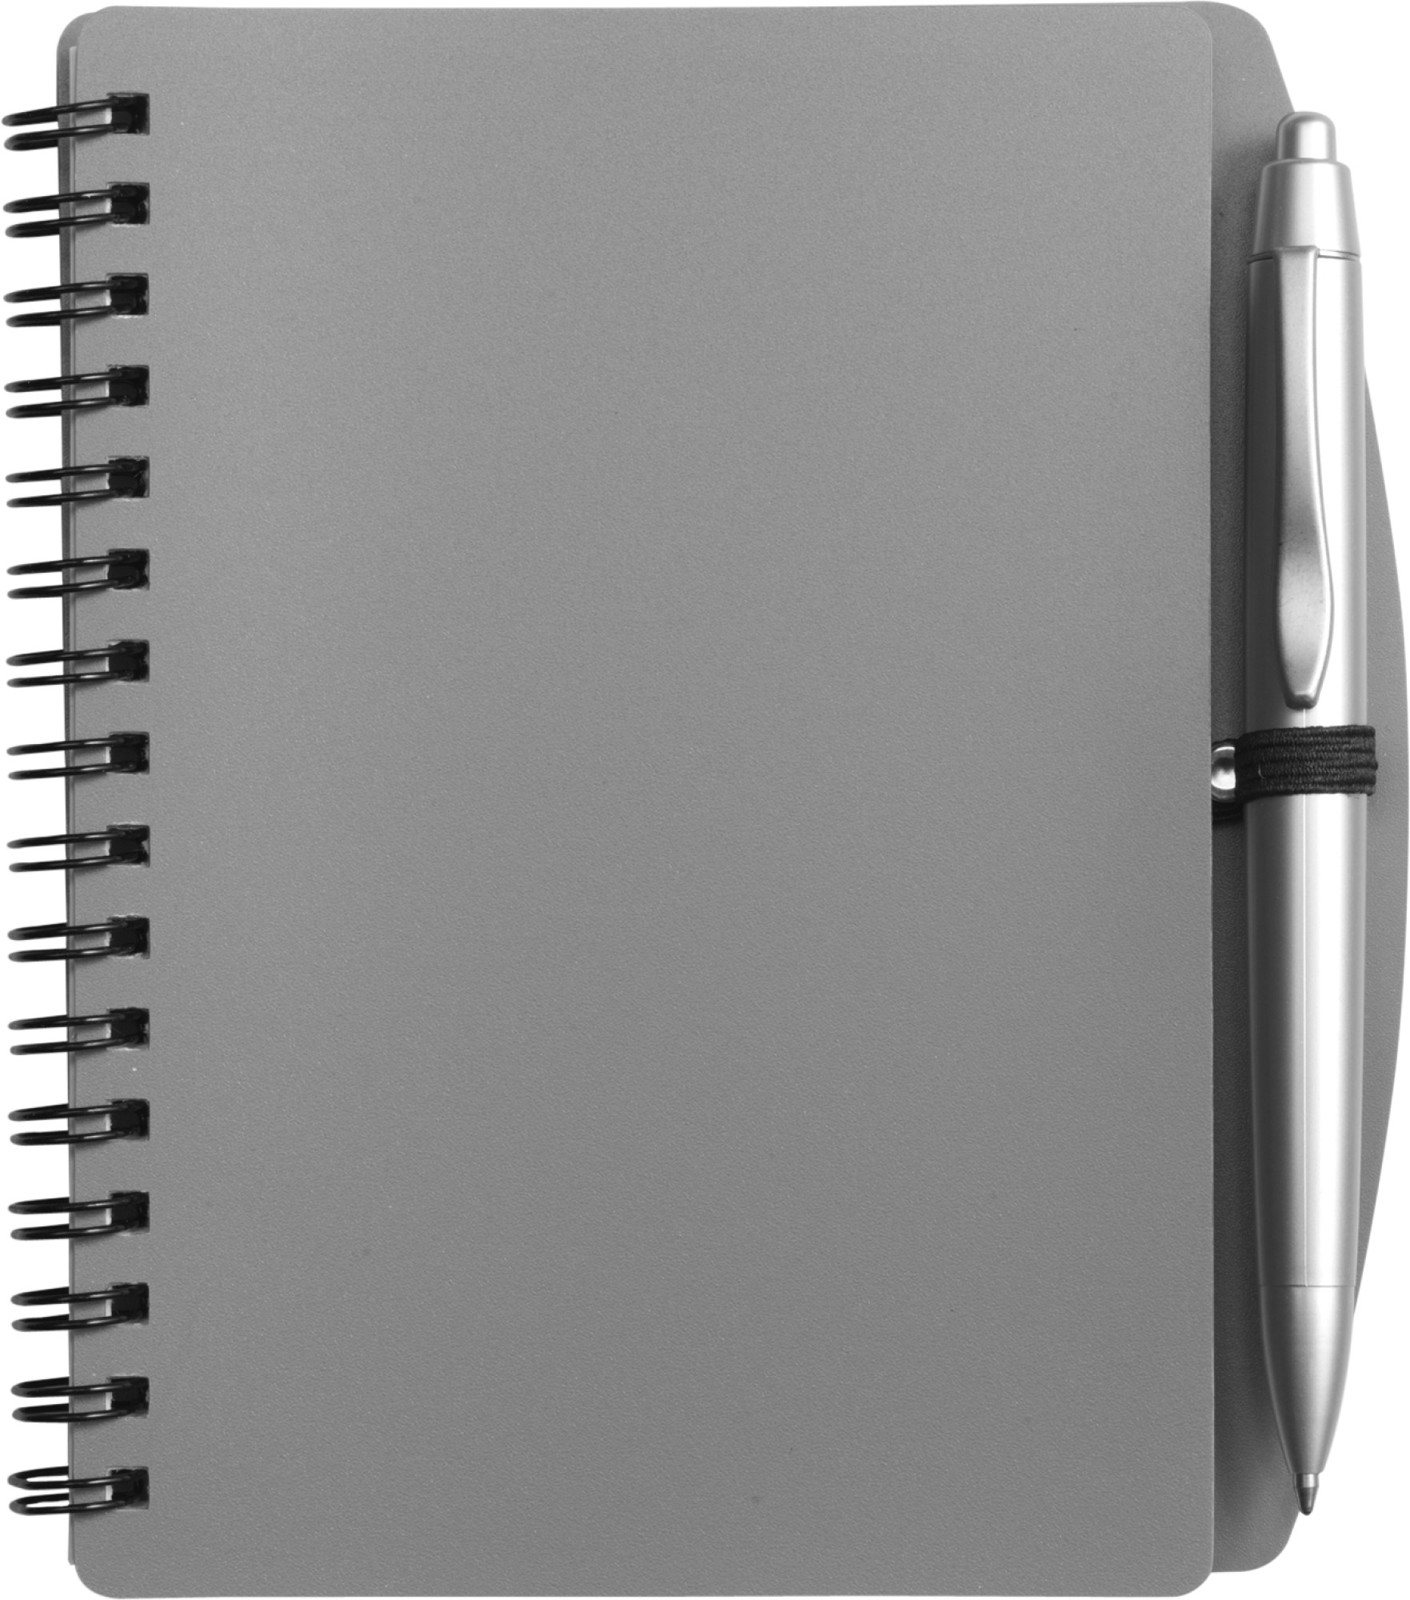 PP notebook with ballpen - Grey